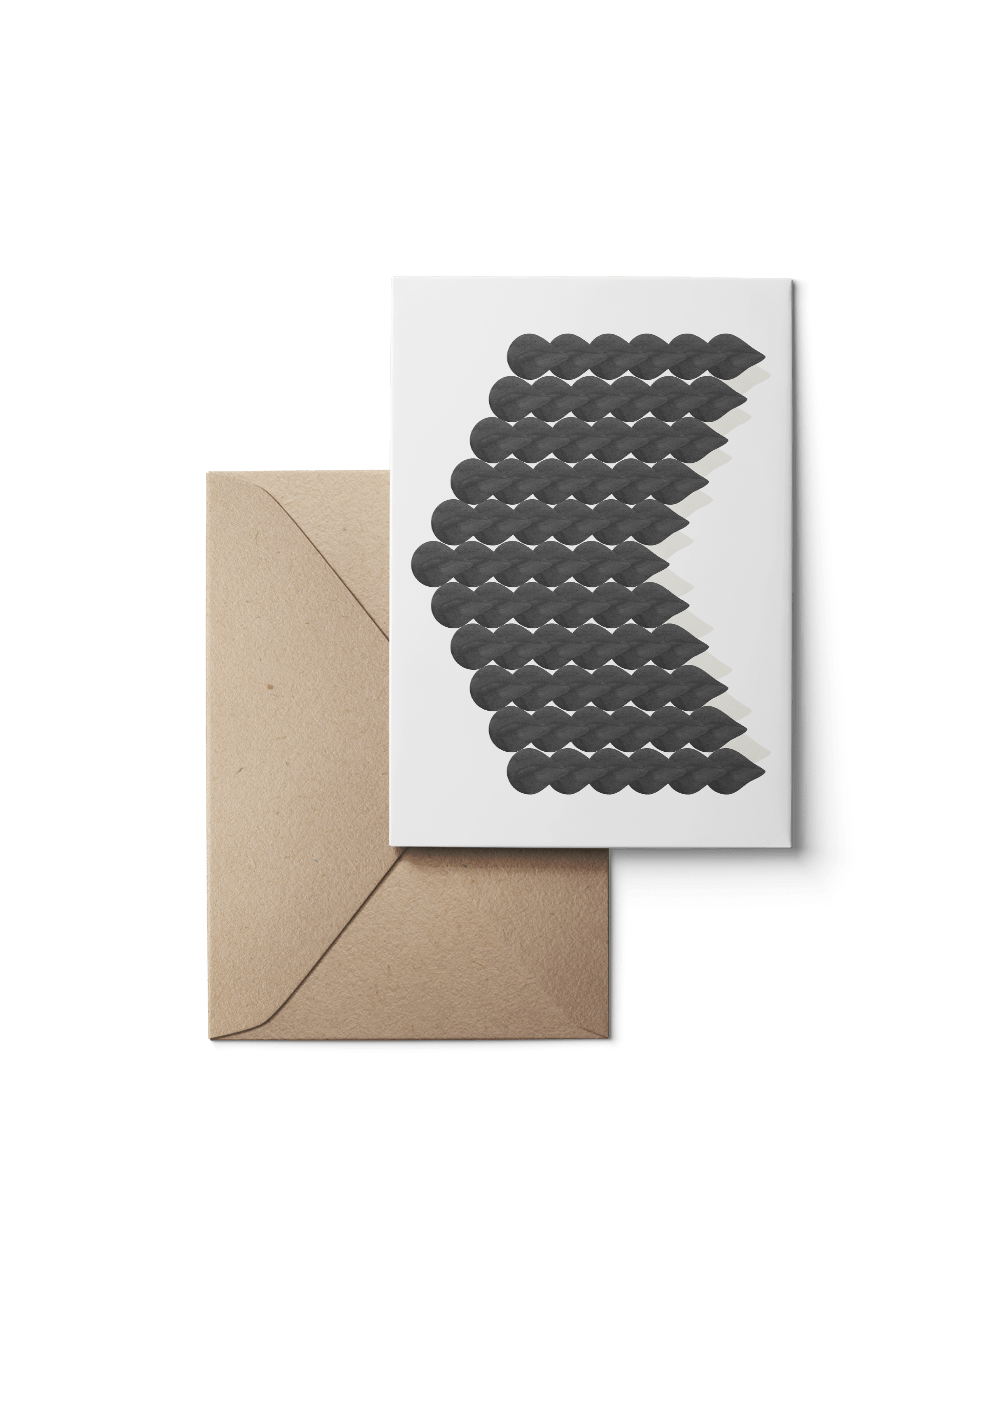 Rainstorms, Eco, Grußkarte, 6 Karten Set by Karten Design Fabrik. Supplier of designer Greeting Cards, Gift Wrap, Christmas Cards & Invitations to leading design stores including Connox, Modulor, Magazin & Manufactum.